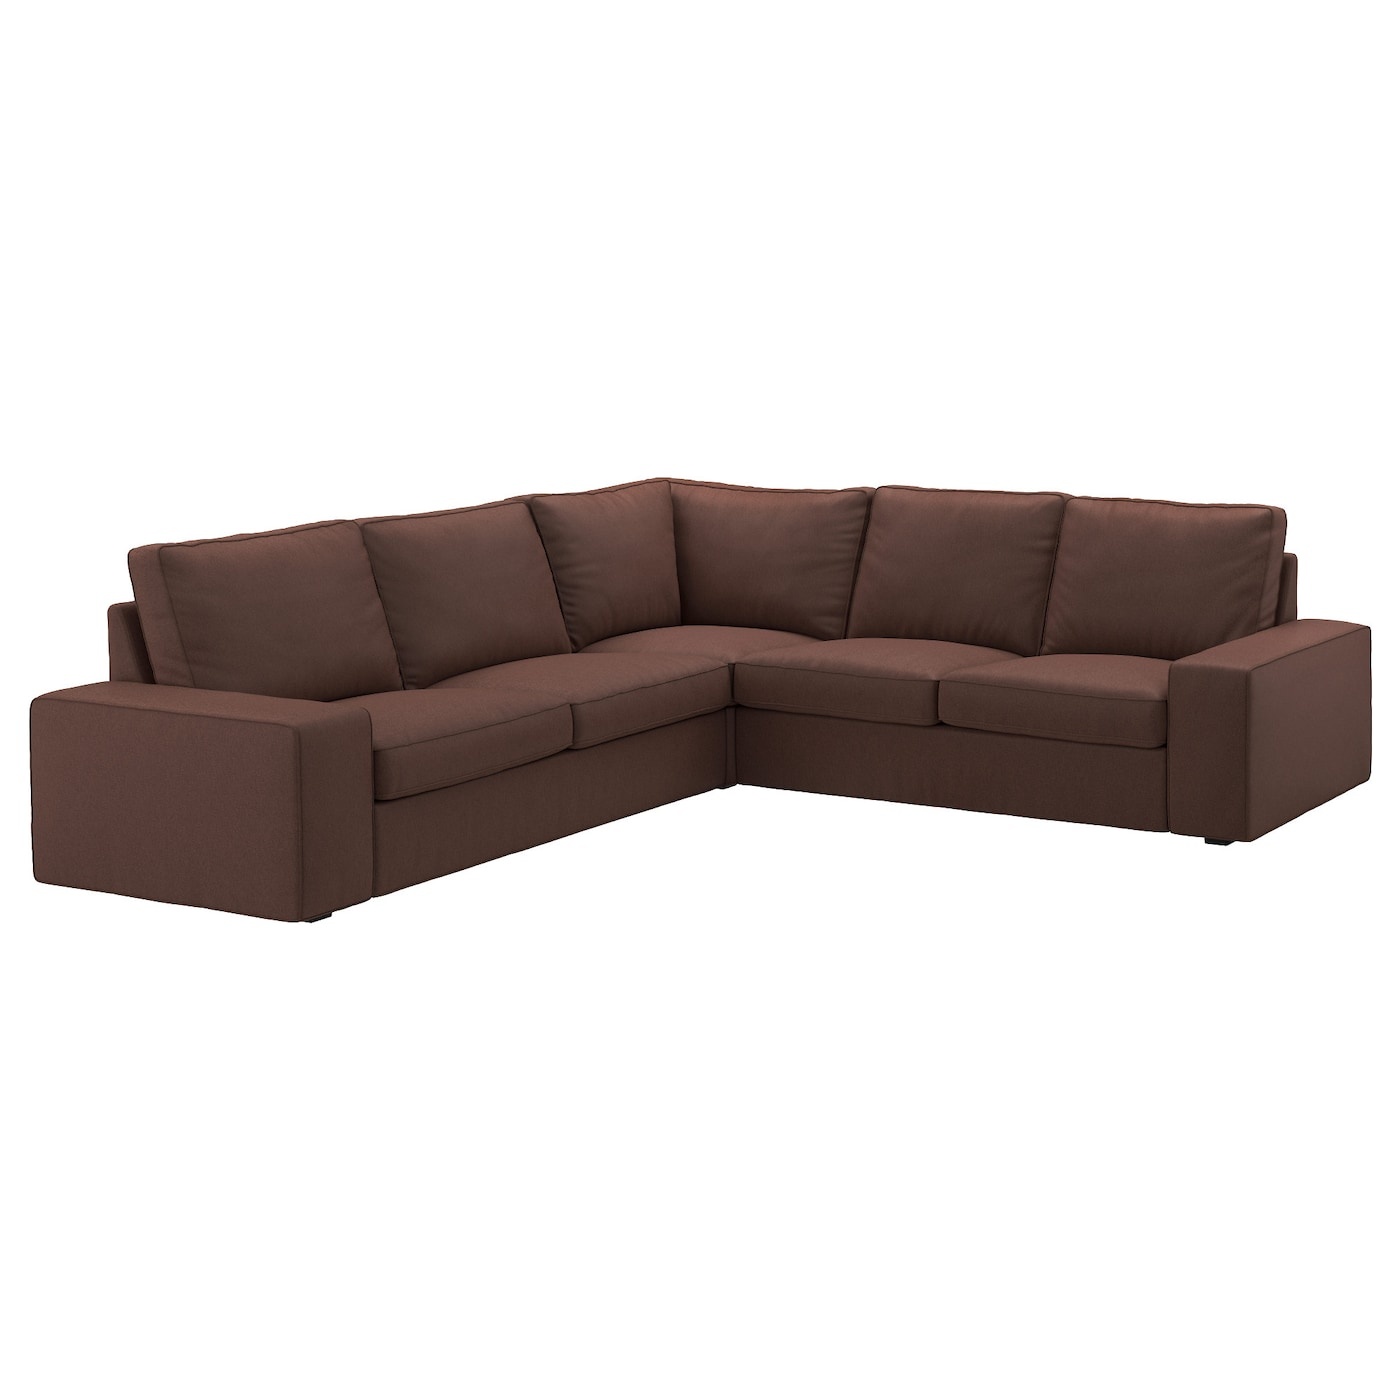 Kivik Corner Sofa 2 2 Borred Dark Brown Ikea